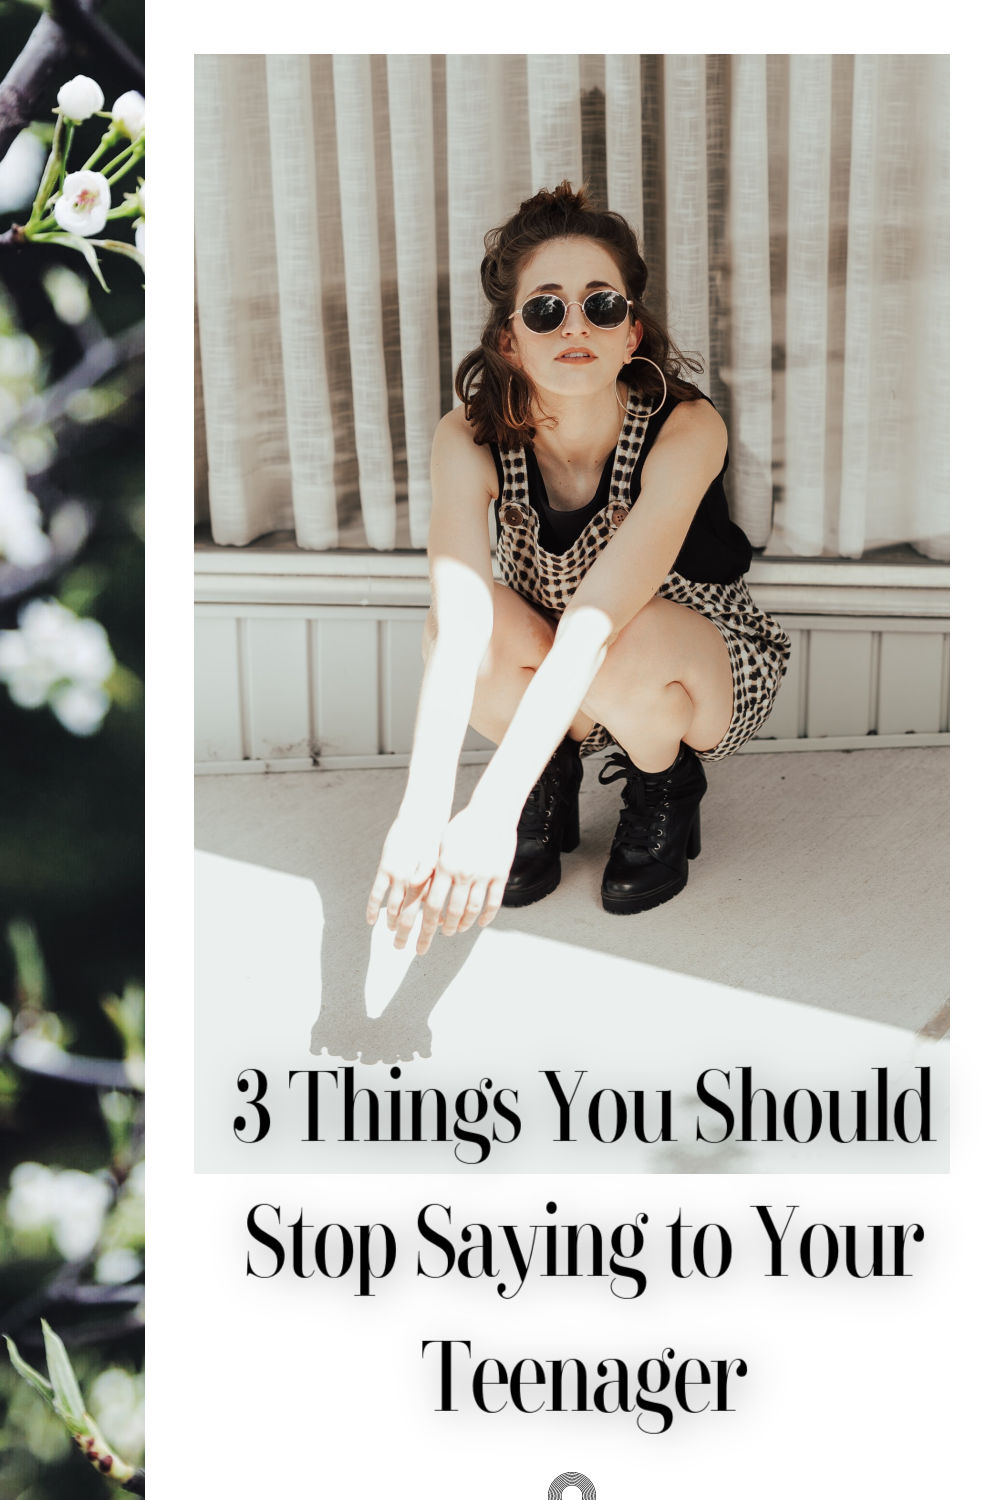 3 Things You Should Stop Saying to Your Teenager